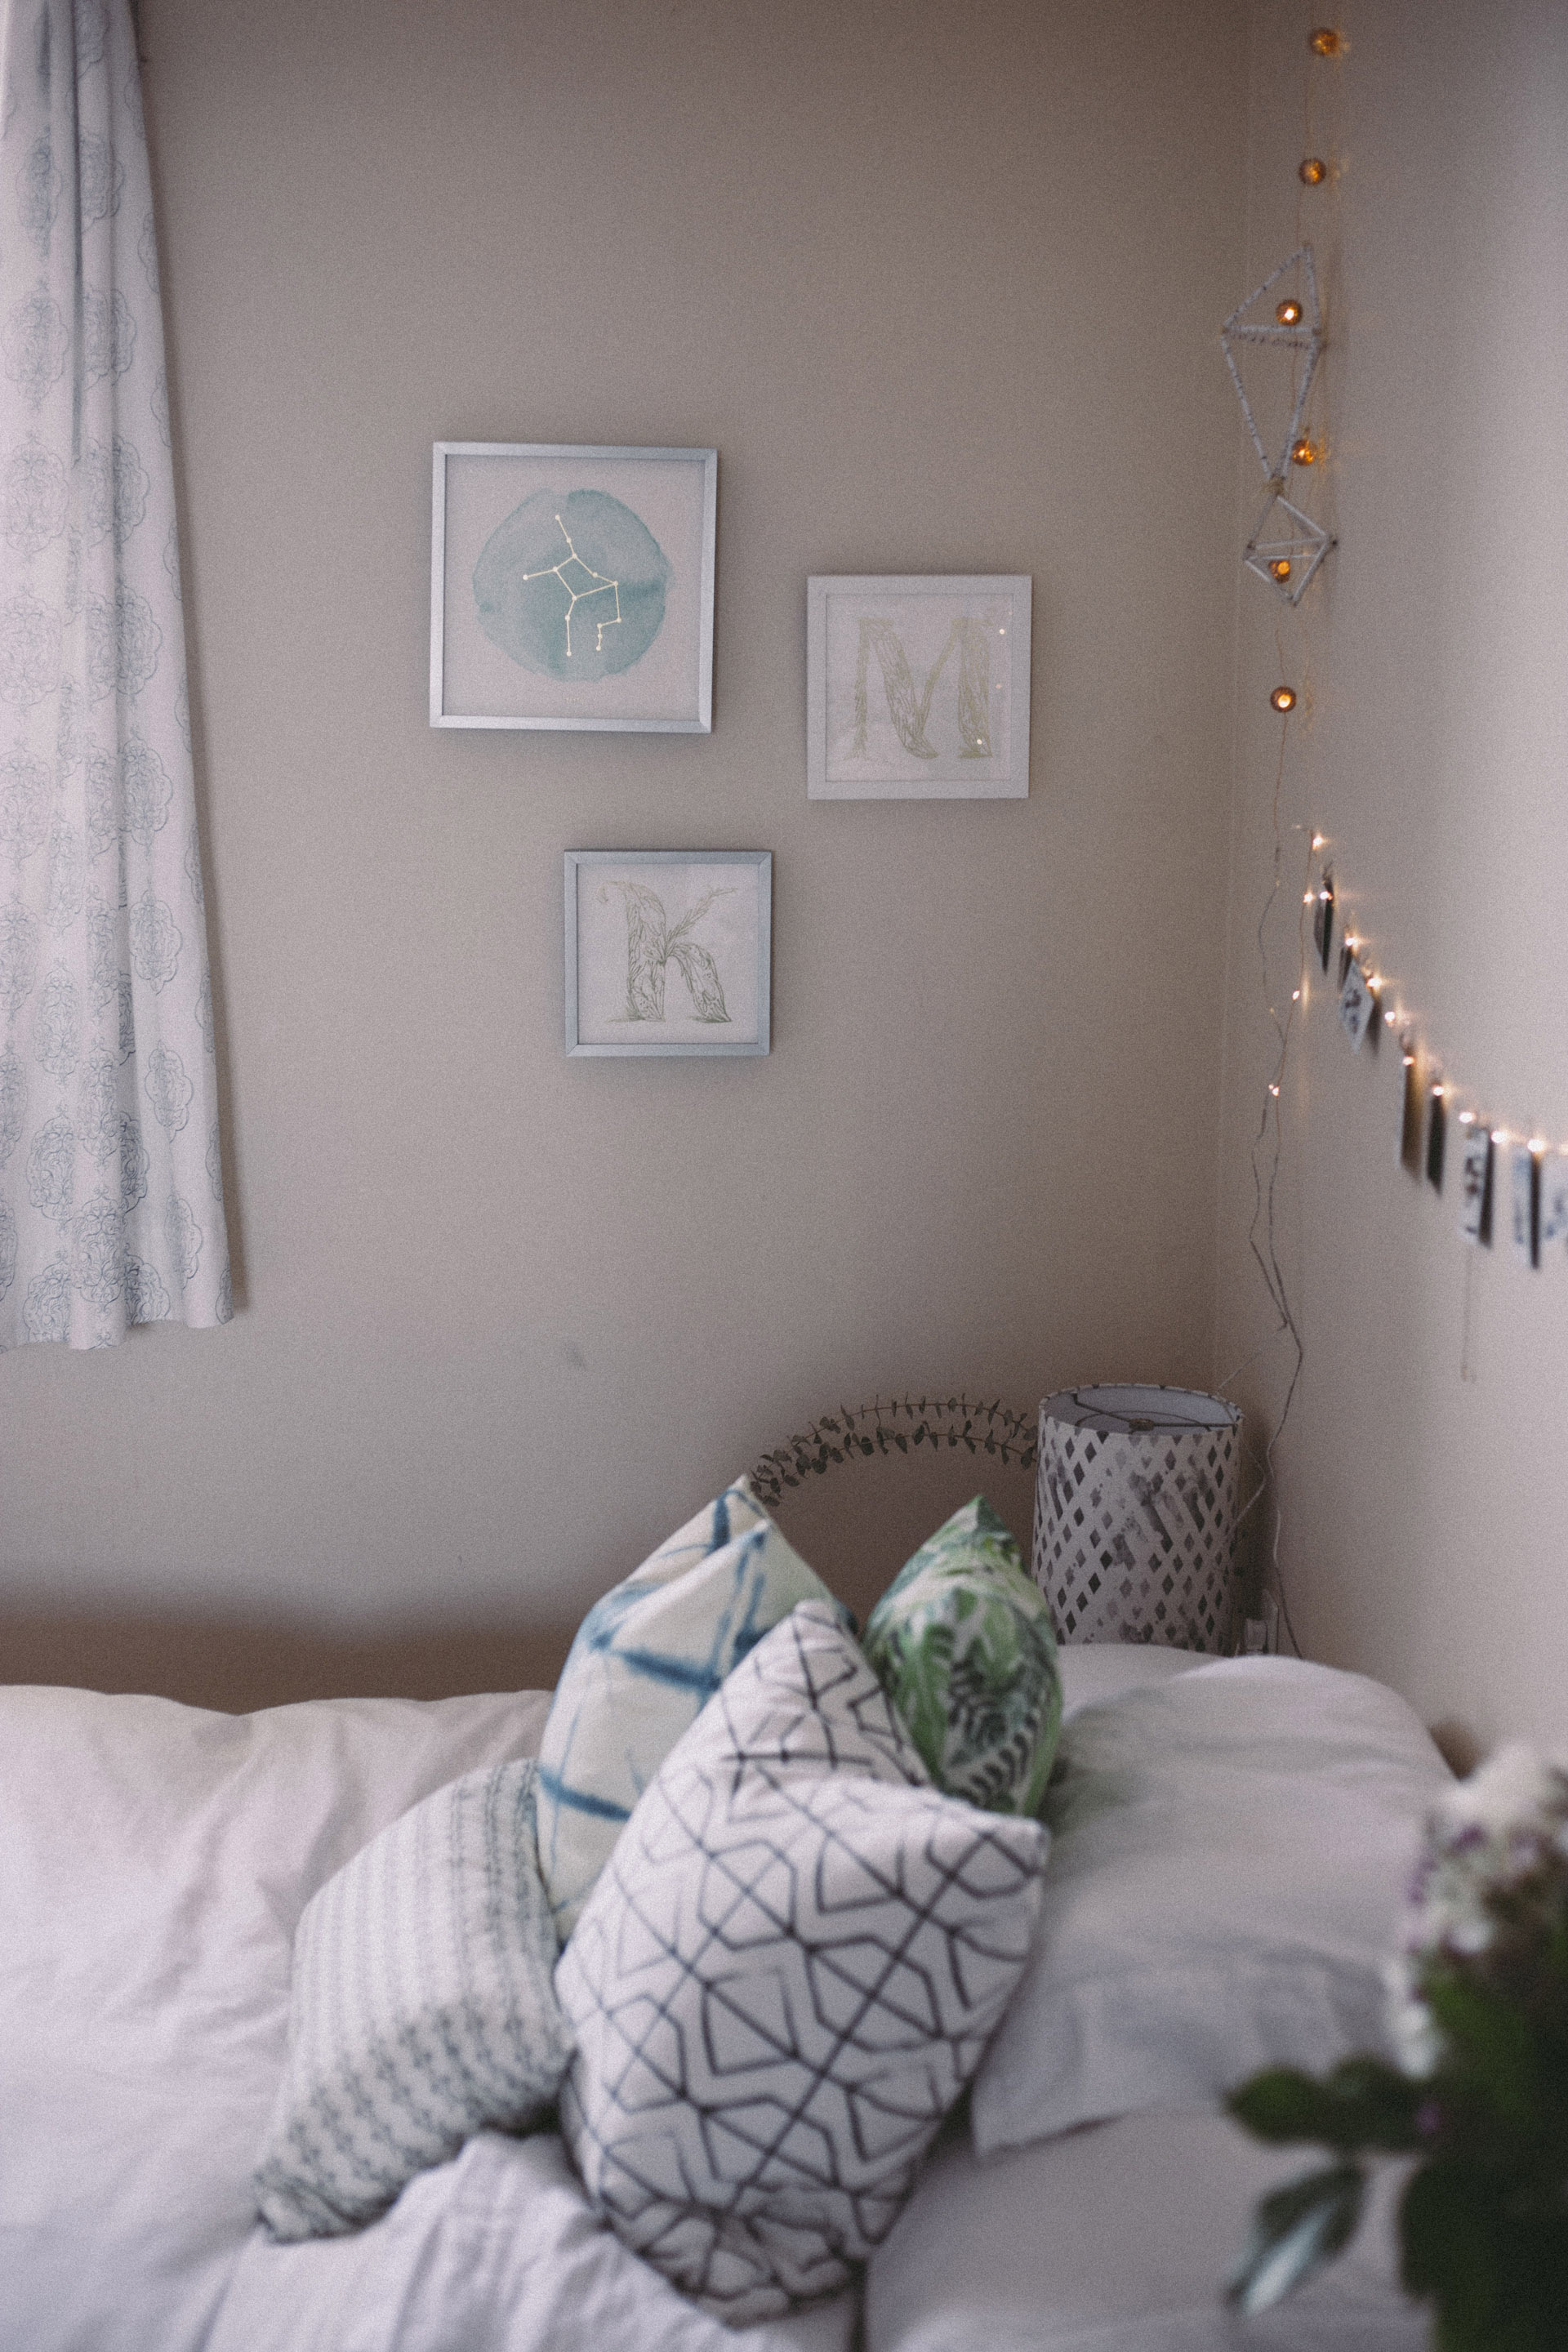 Boho Bedroom Created Sweet Little Decor Pieces From Minted